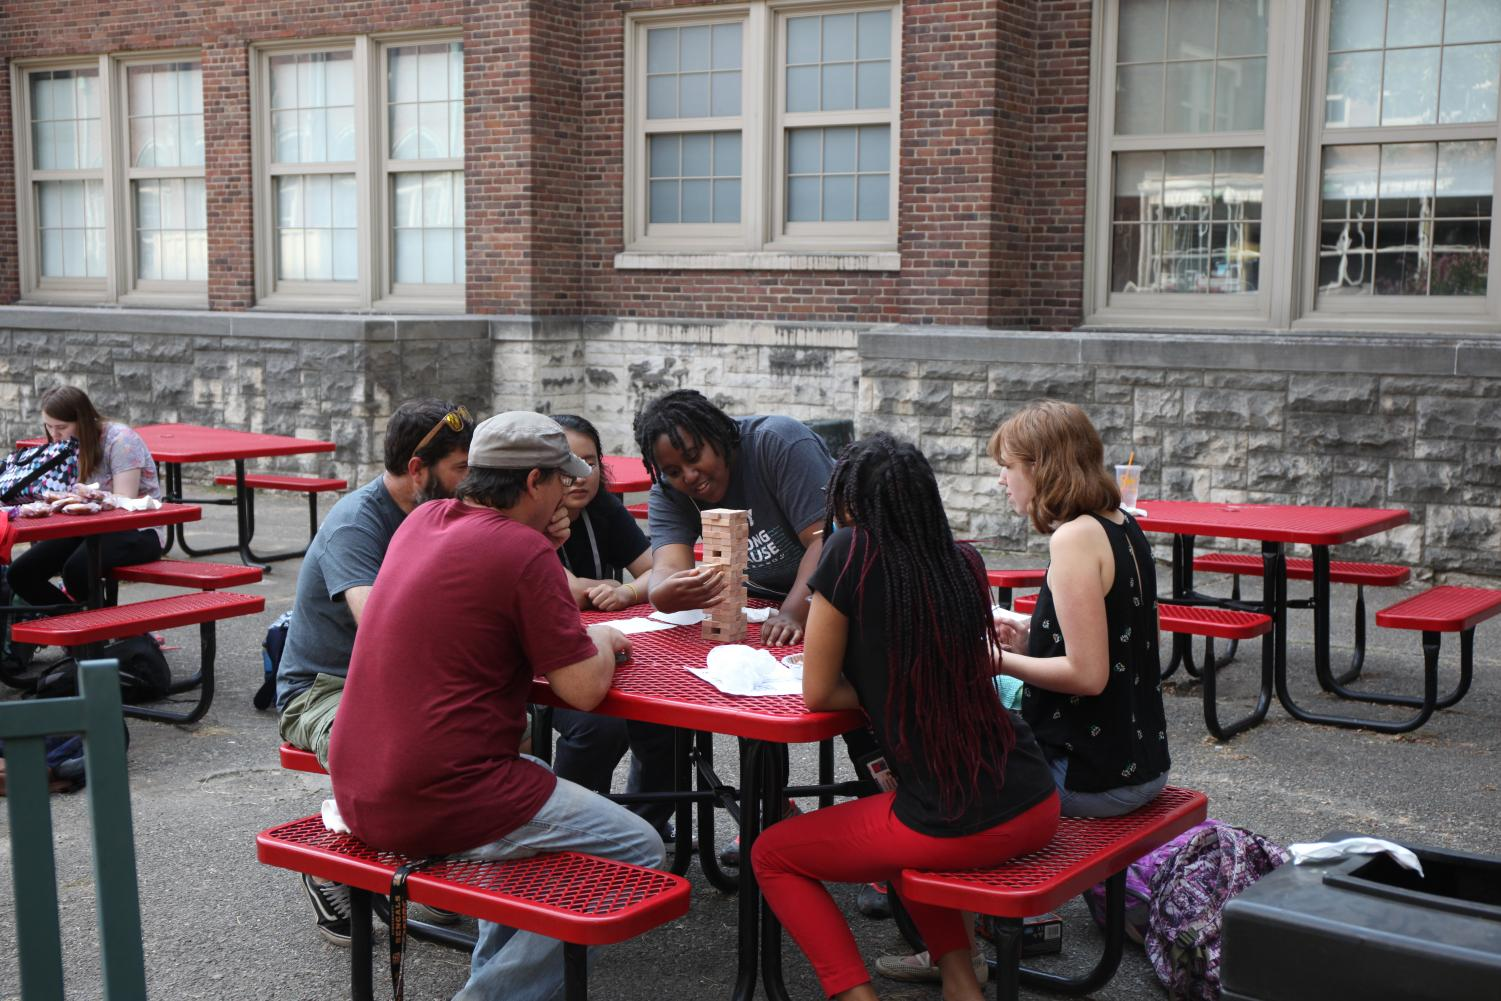 MST students play Jenga in the courtyard. Photo by Jaesylin Stephens.